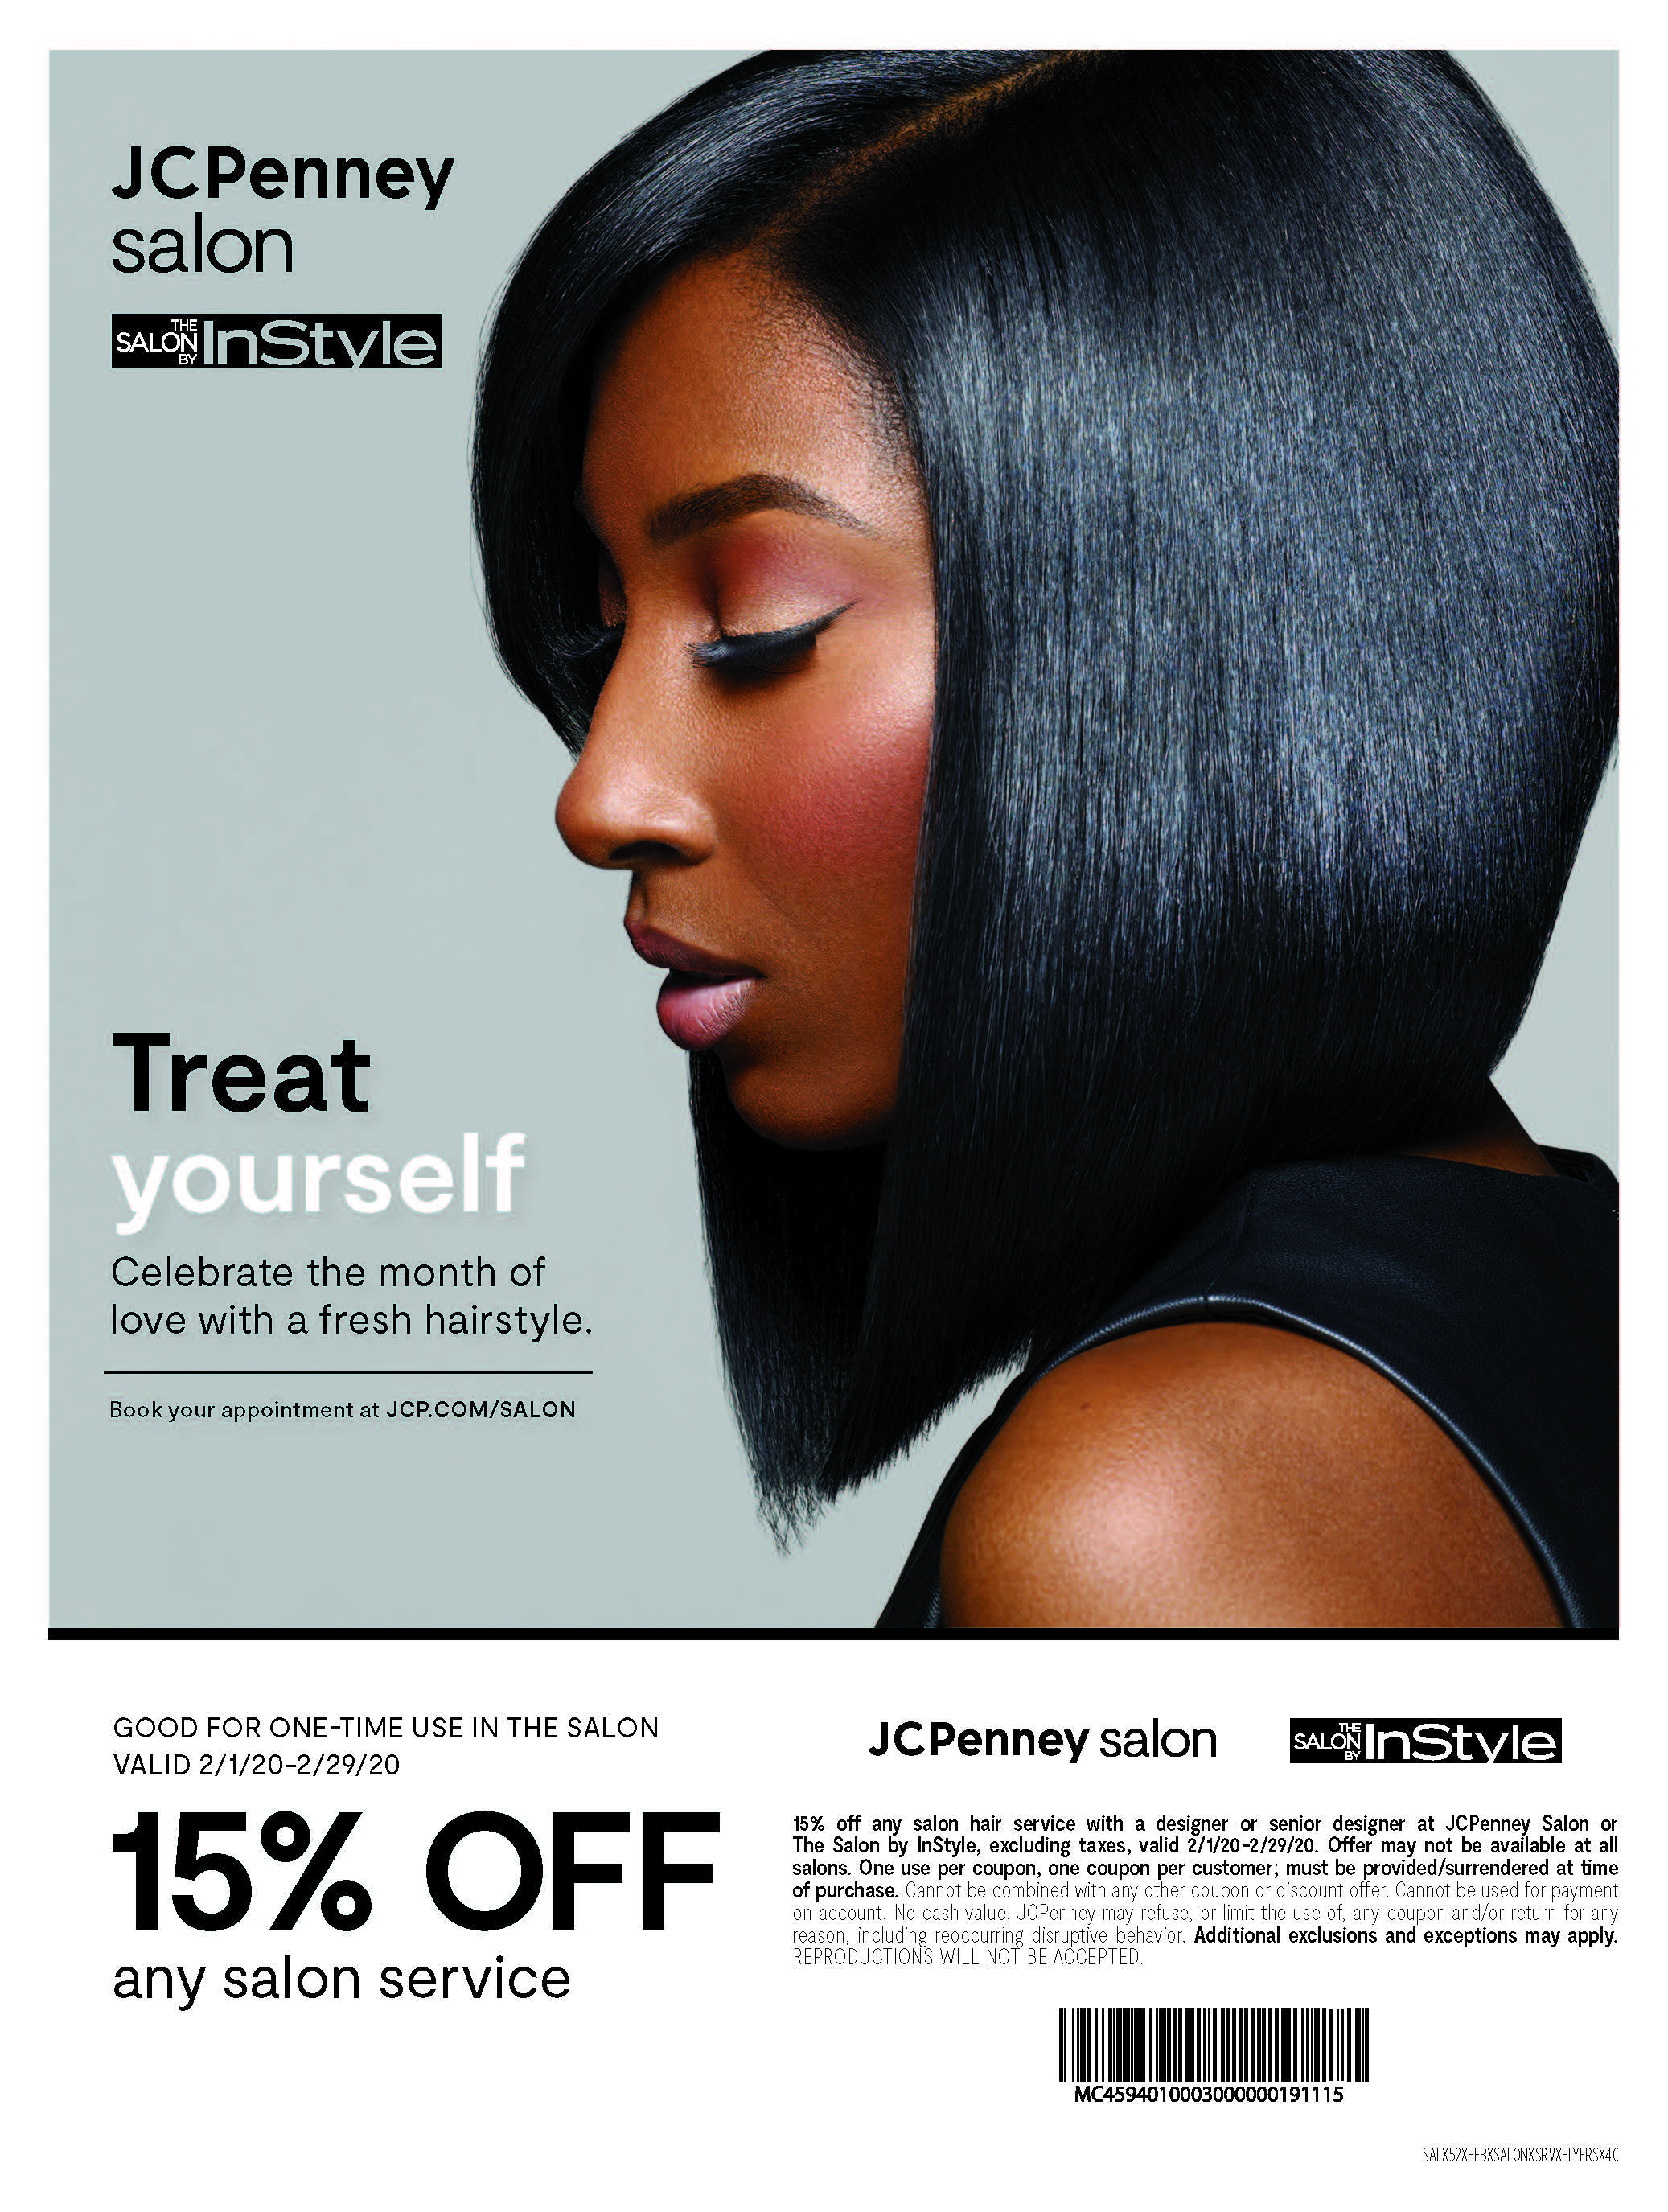 JCPenney Salon: 15% Off Any Service from JCPenney